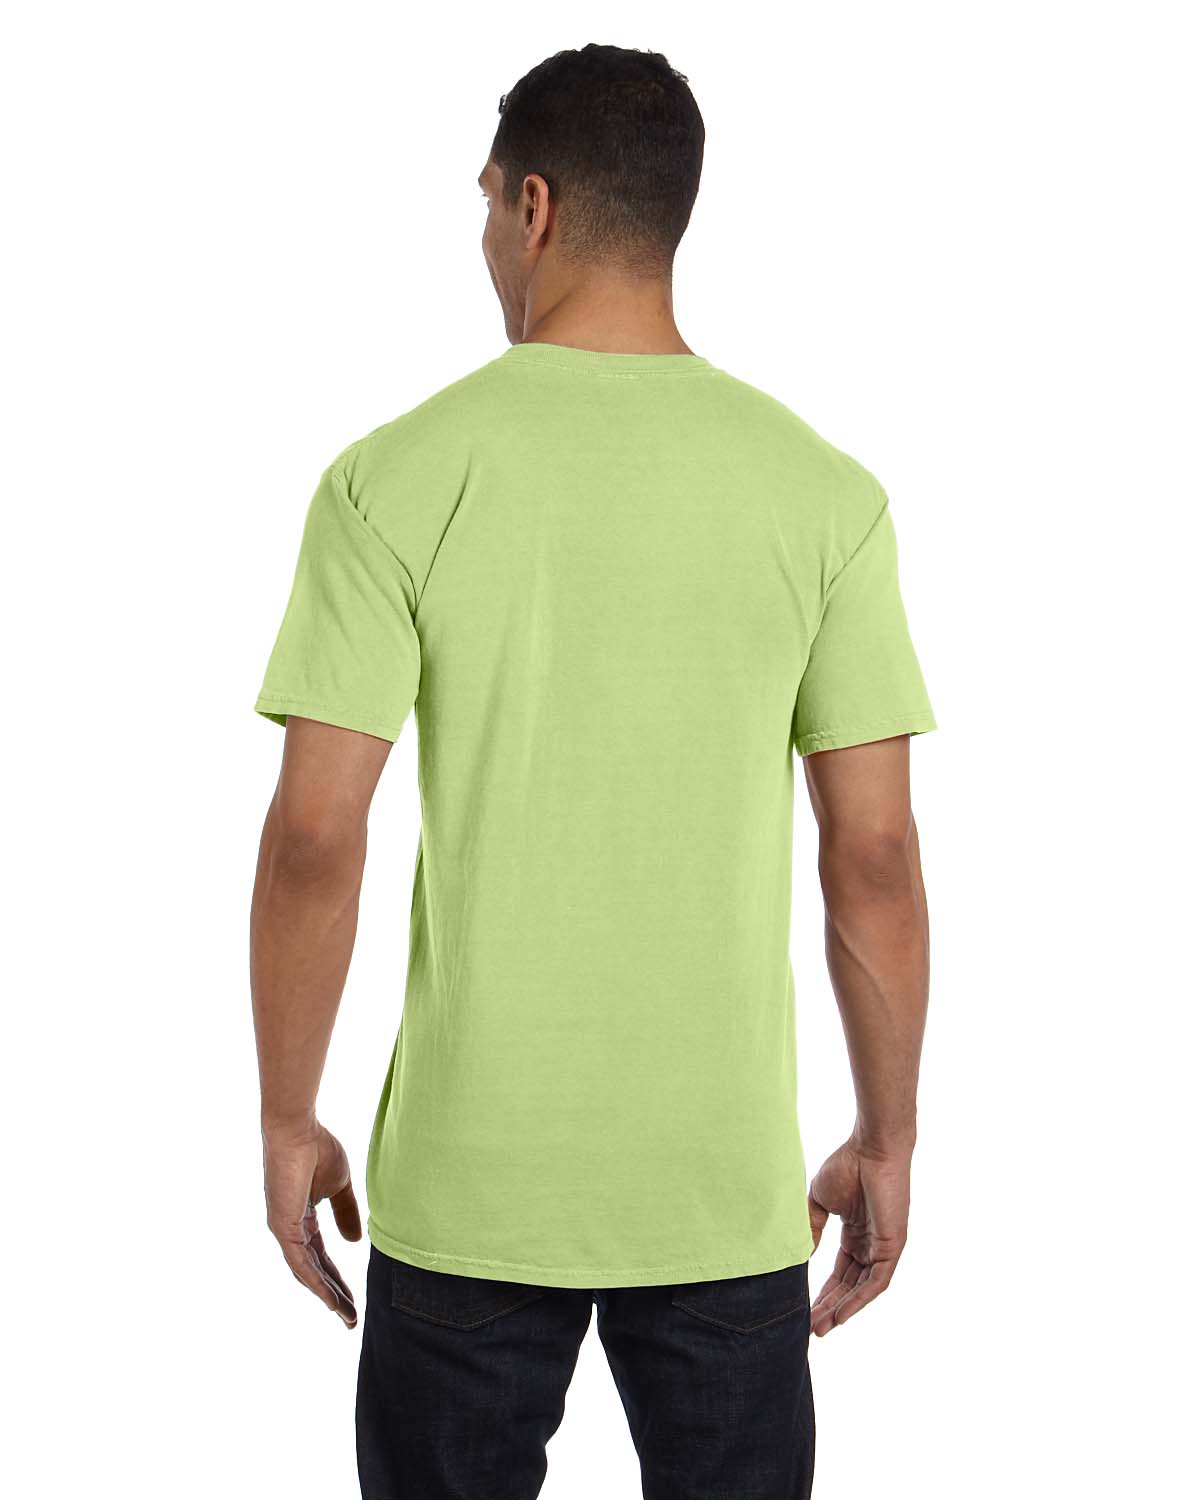 Comfort-Colors-Men-039-s-6-1-oz-Garment-Dyed-Pocket-T-Shirt-6030CC-S-3XL thumbnail 22